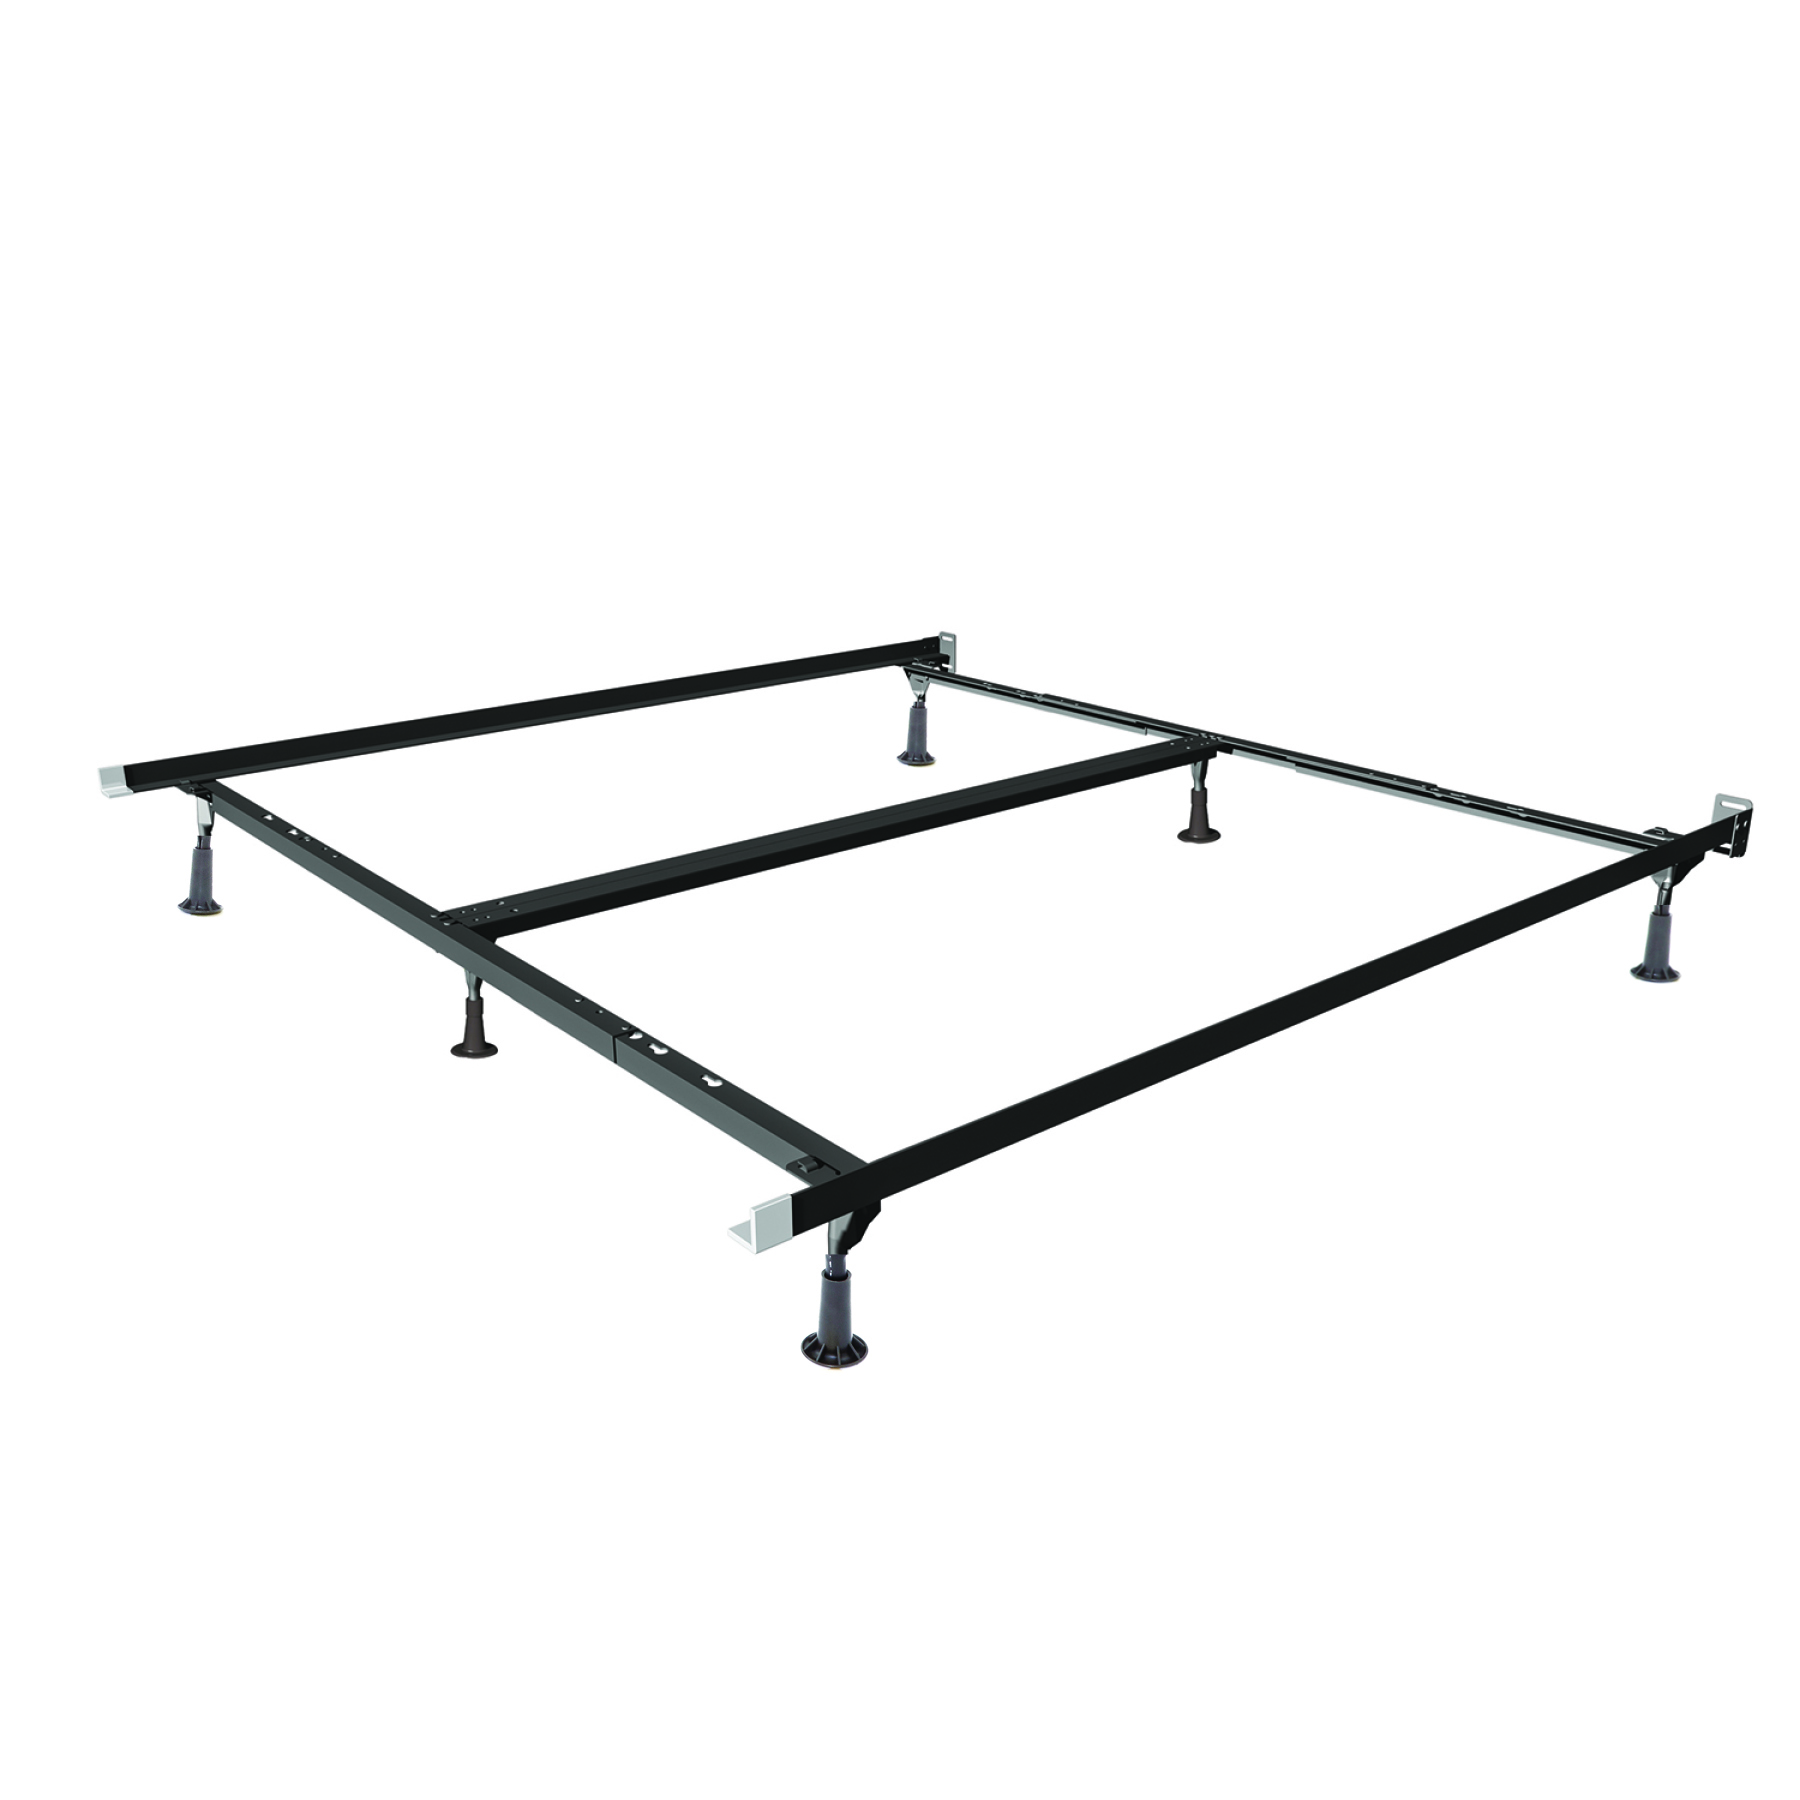 Mantua Insta-Lock I-CS374PG Queen/King/California King Deluxe Bed Frame with Glides